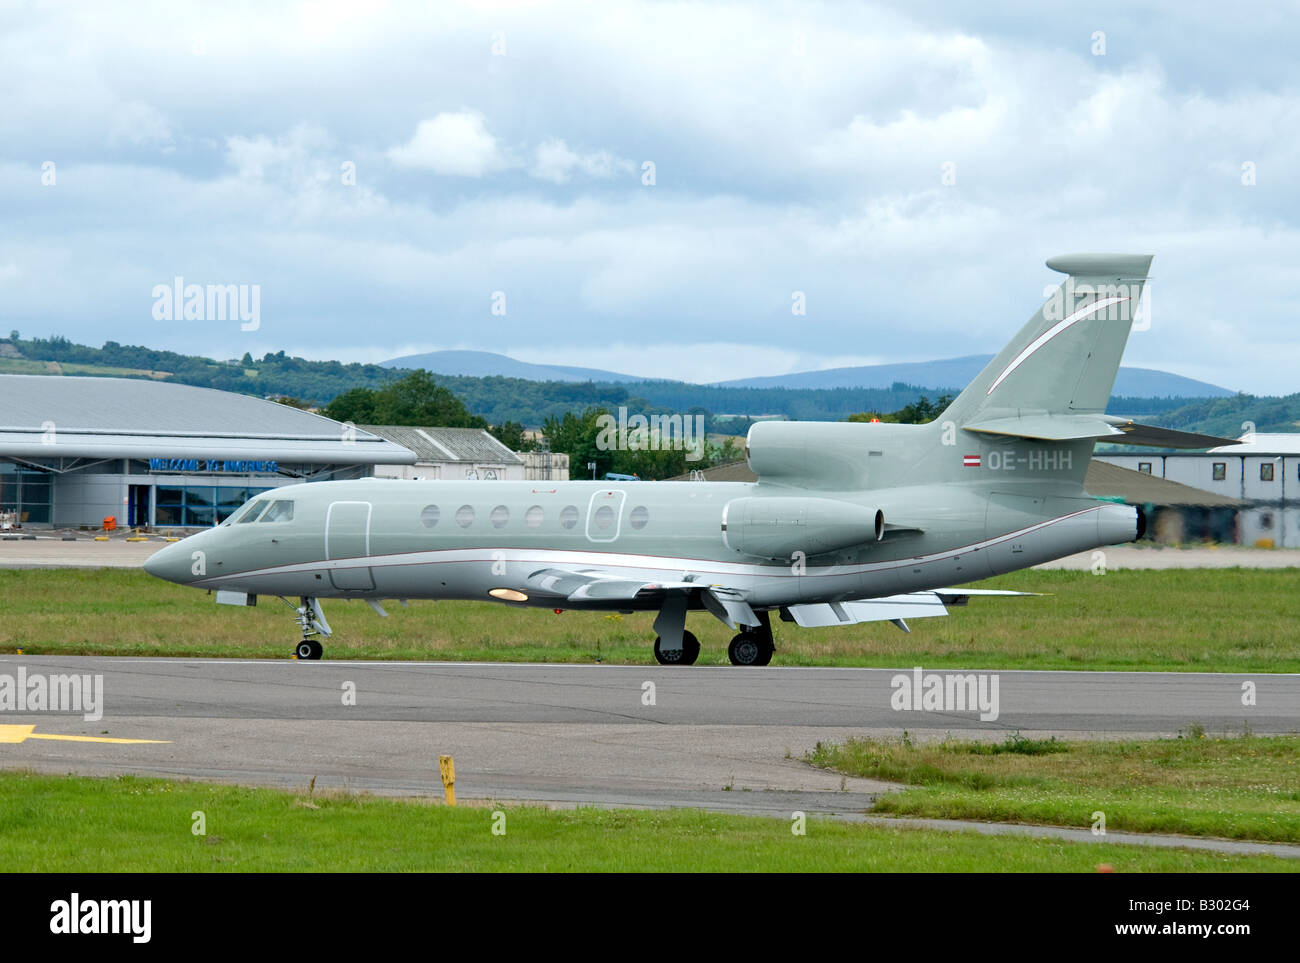 Dassault Falcon 50EX Three Engined Jet Aircraft arriving at Inverness Airport. - Stock Image